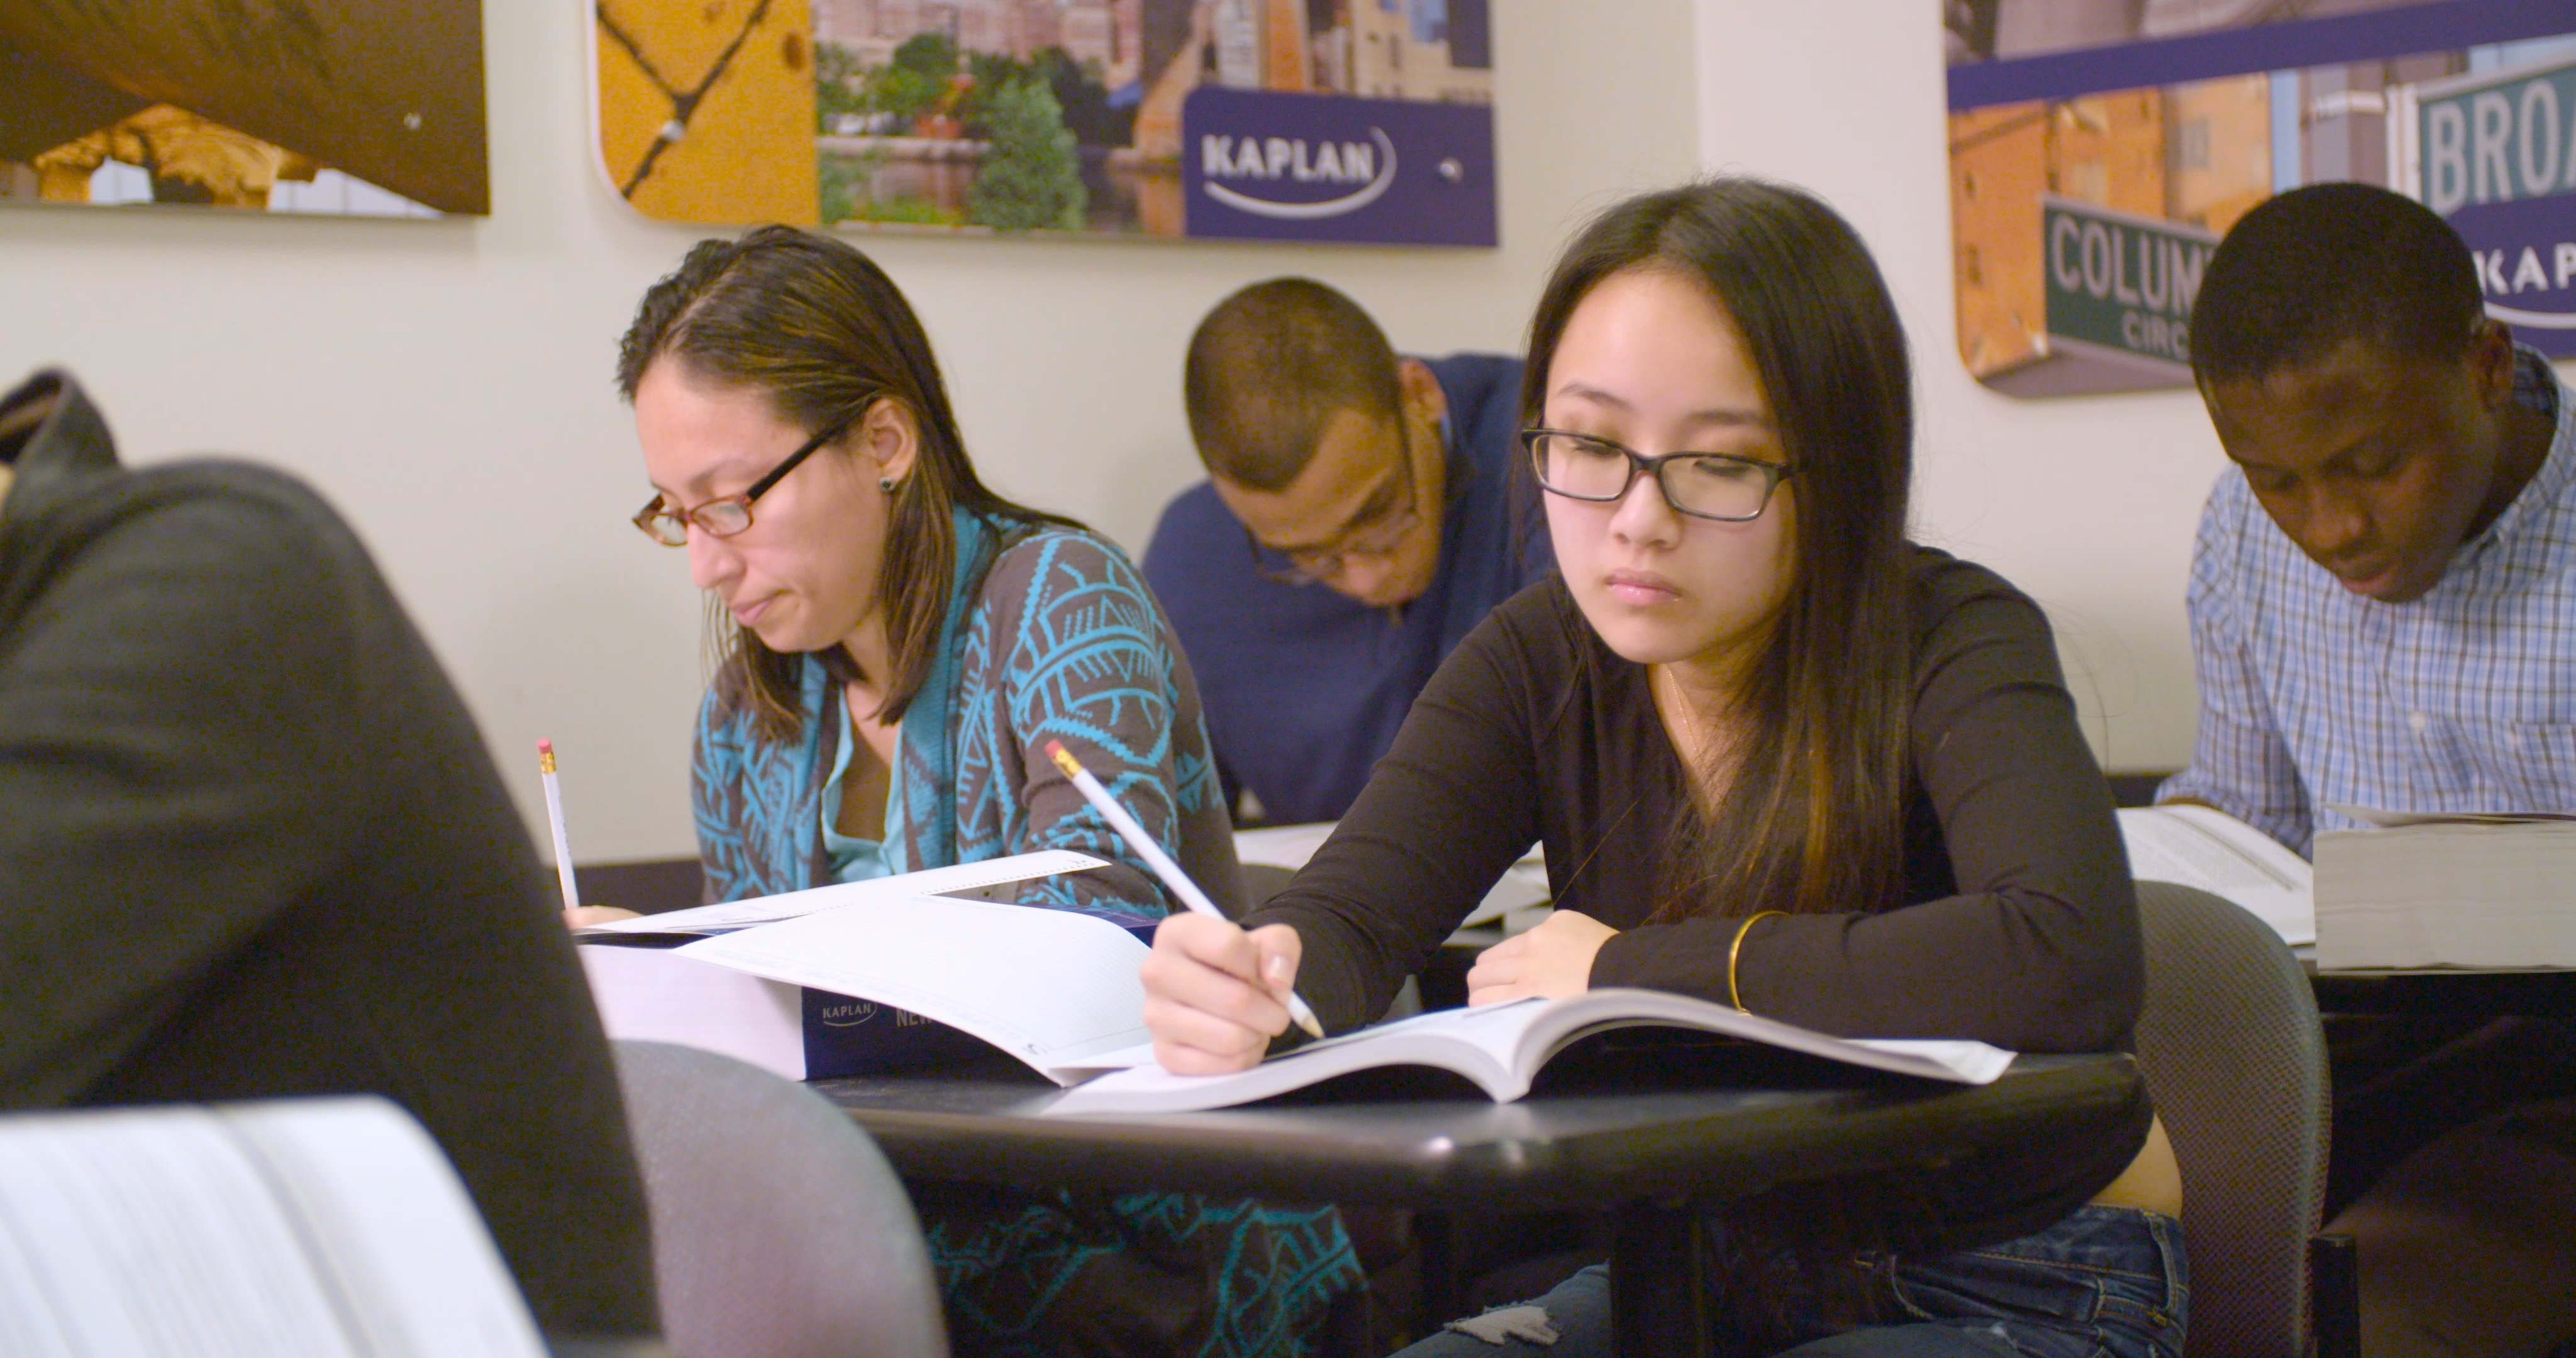 As Students Face Uncertainty about the New SAT®, Kaplan Test Prep Reports  Its ACT® Business Has Surged by More Than Half | Business Wire